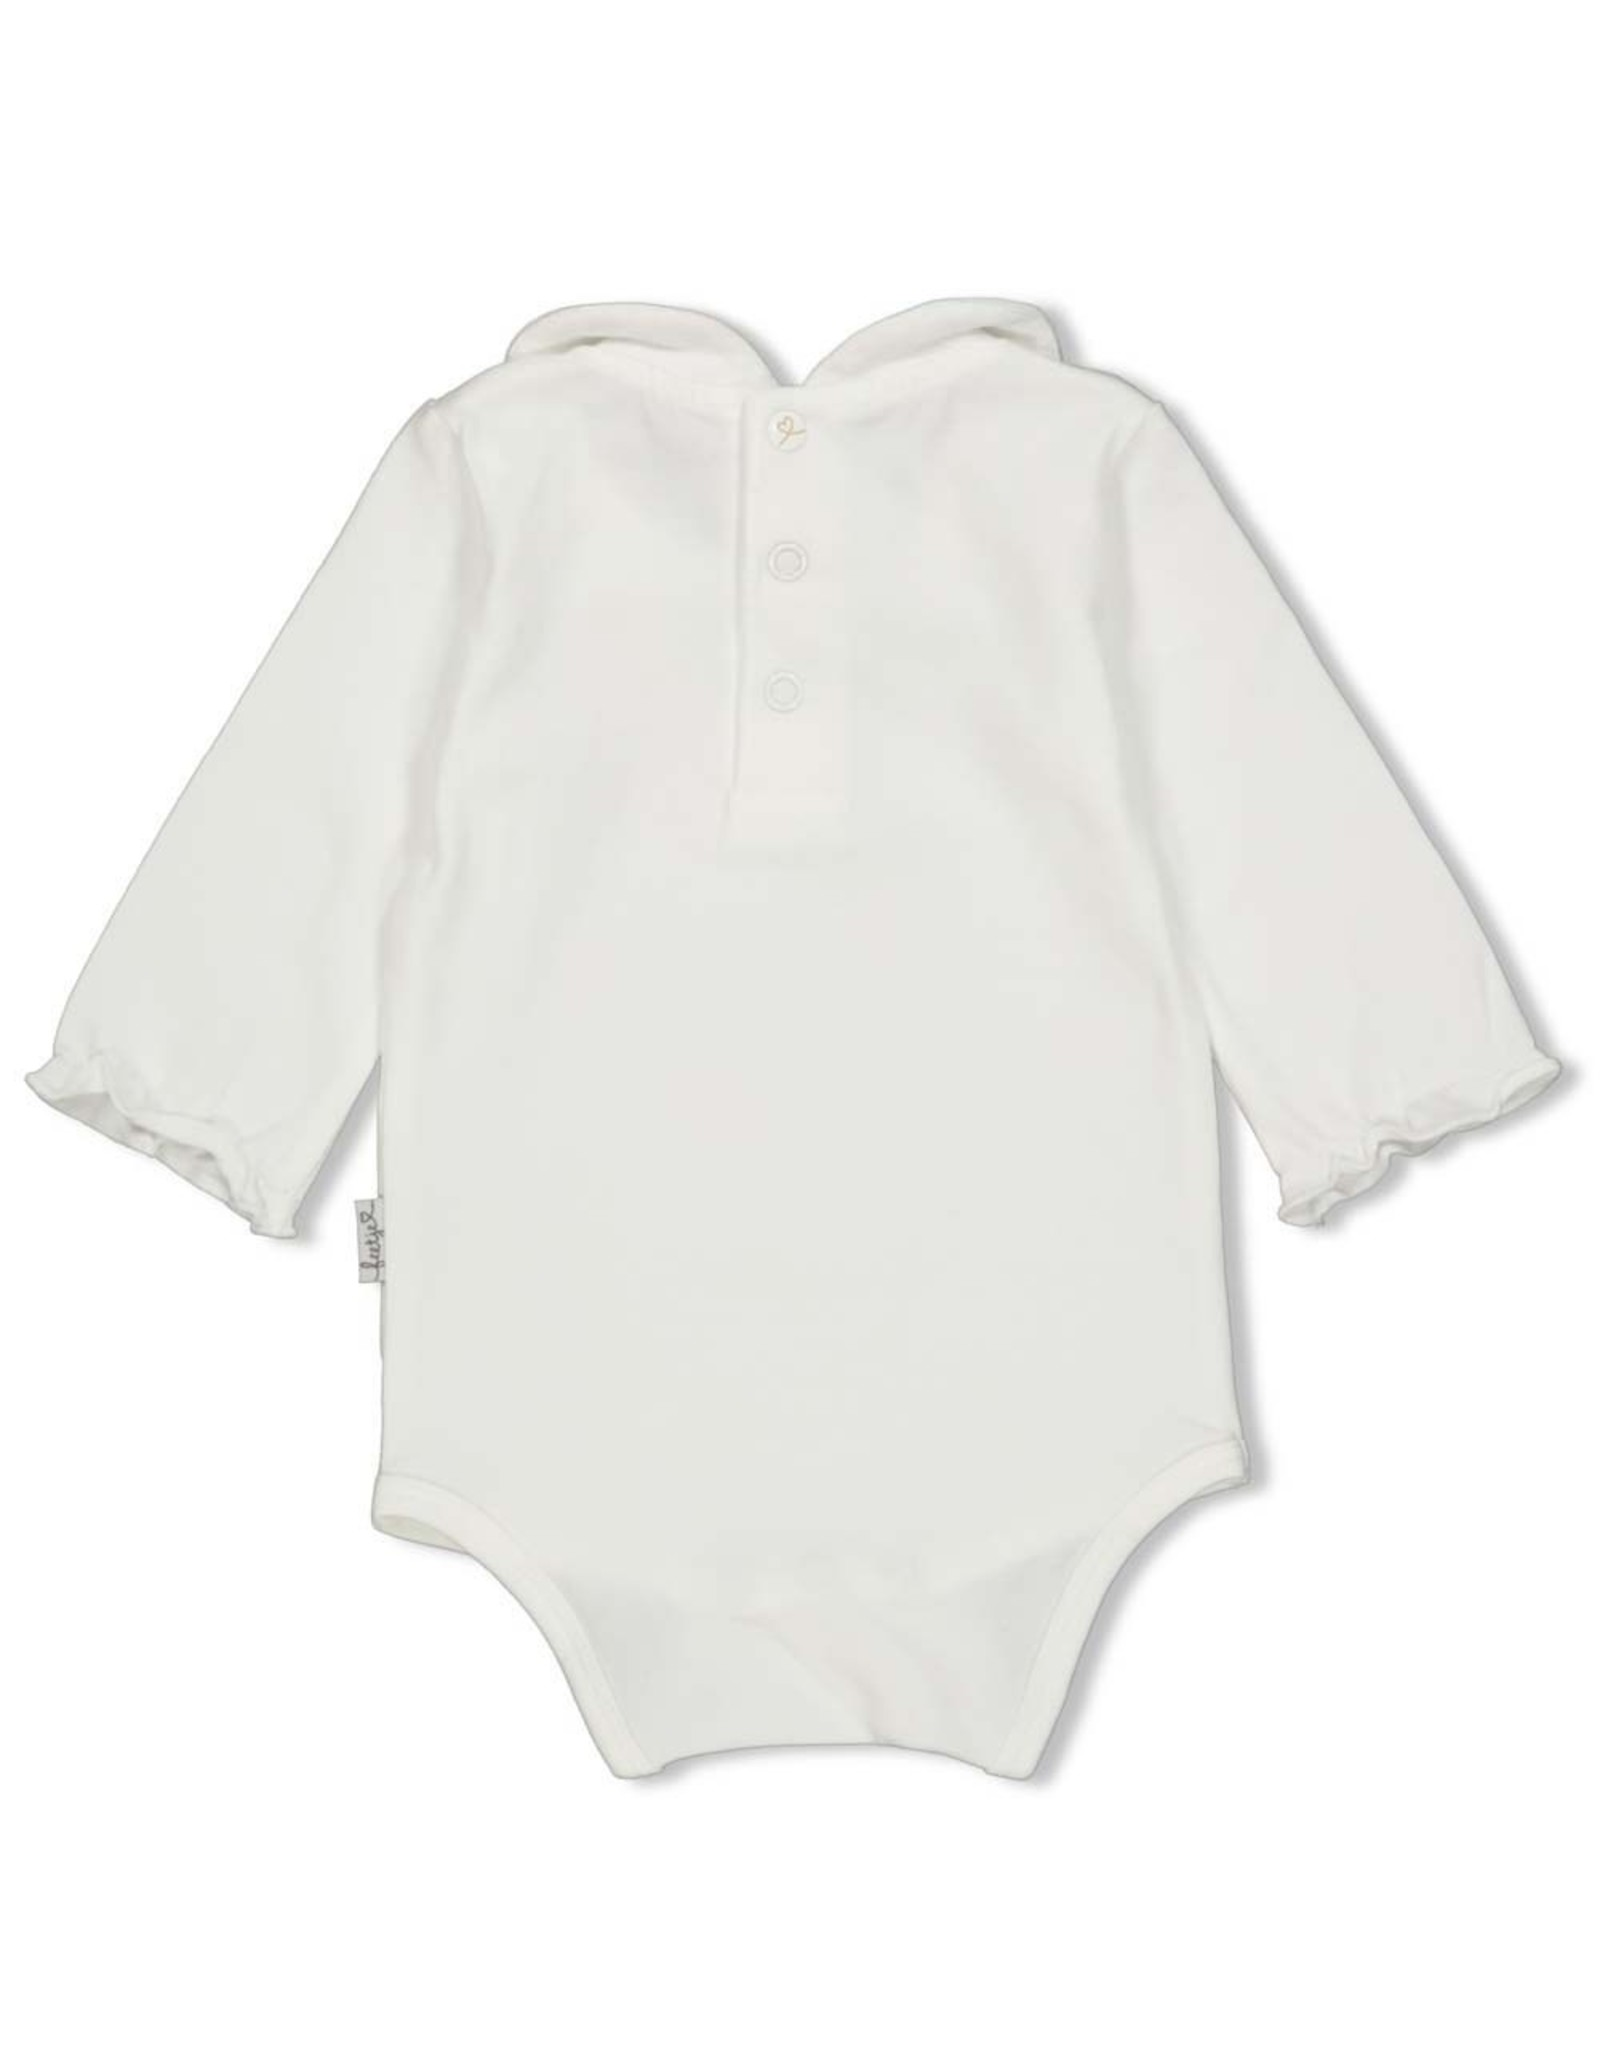 Feetje Romper - Panther Cutie. Offwhite